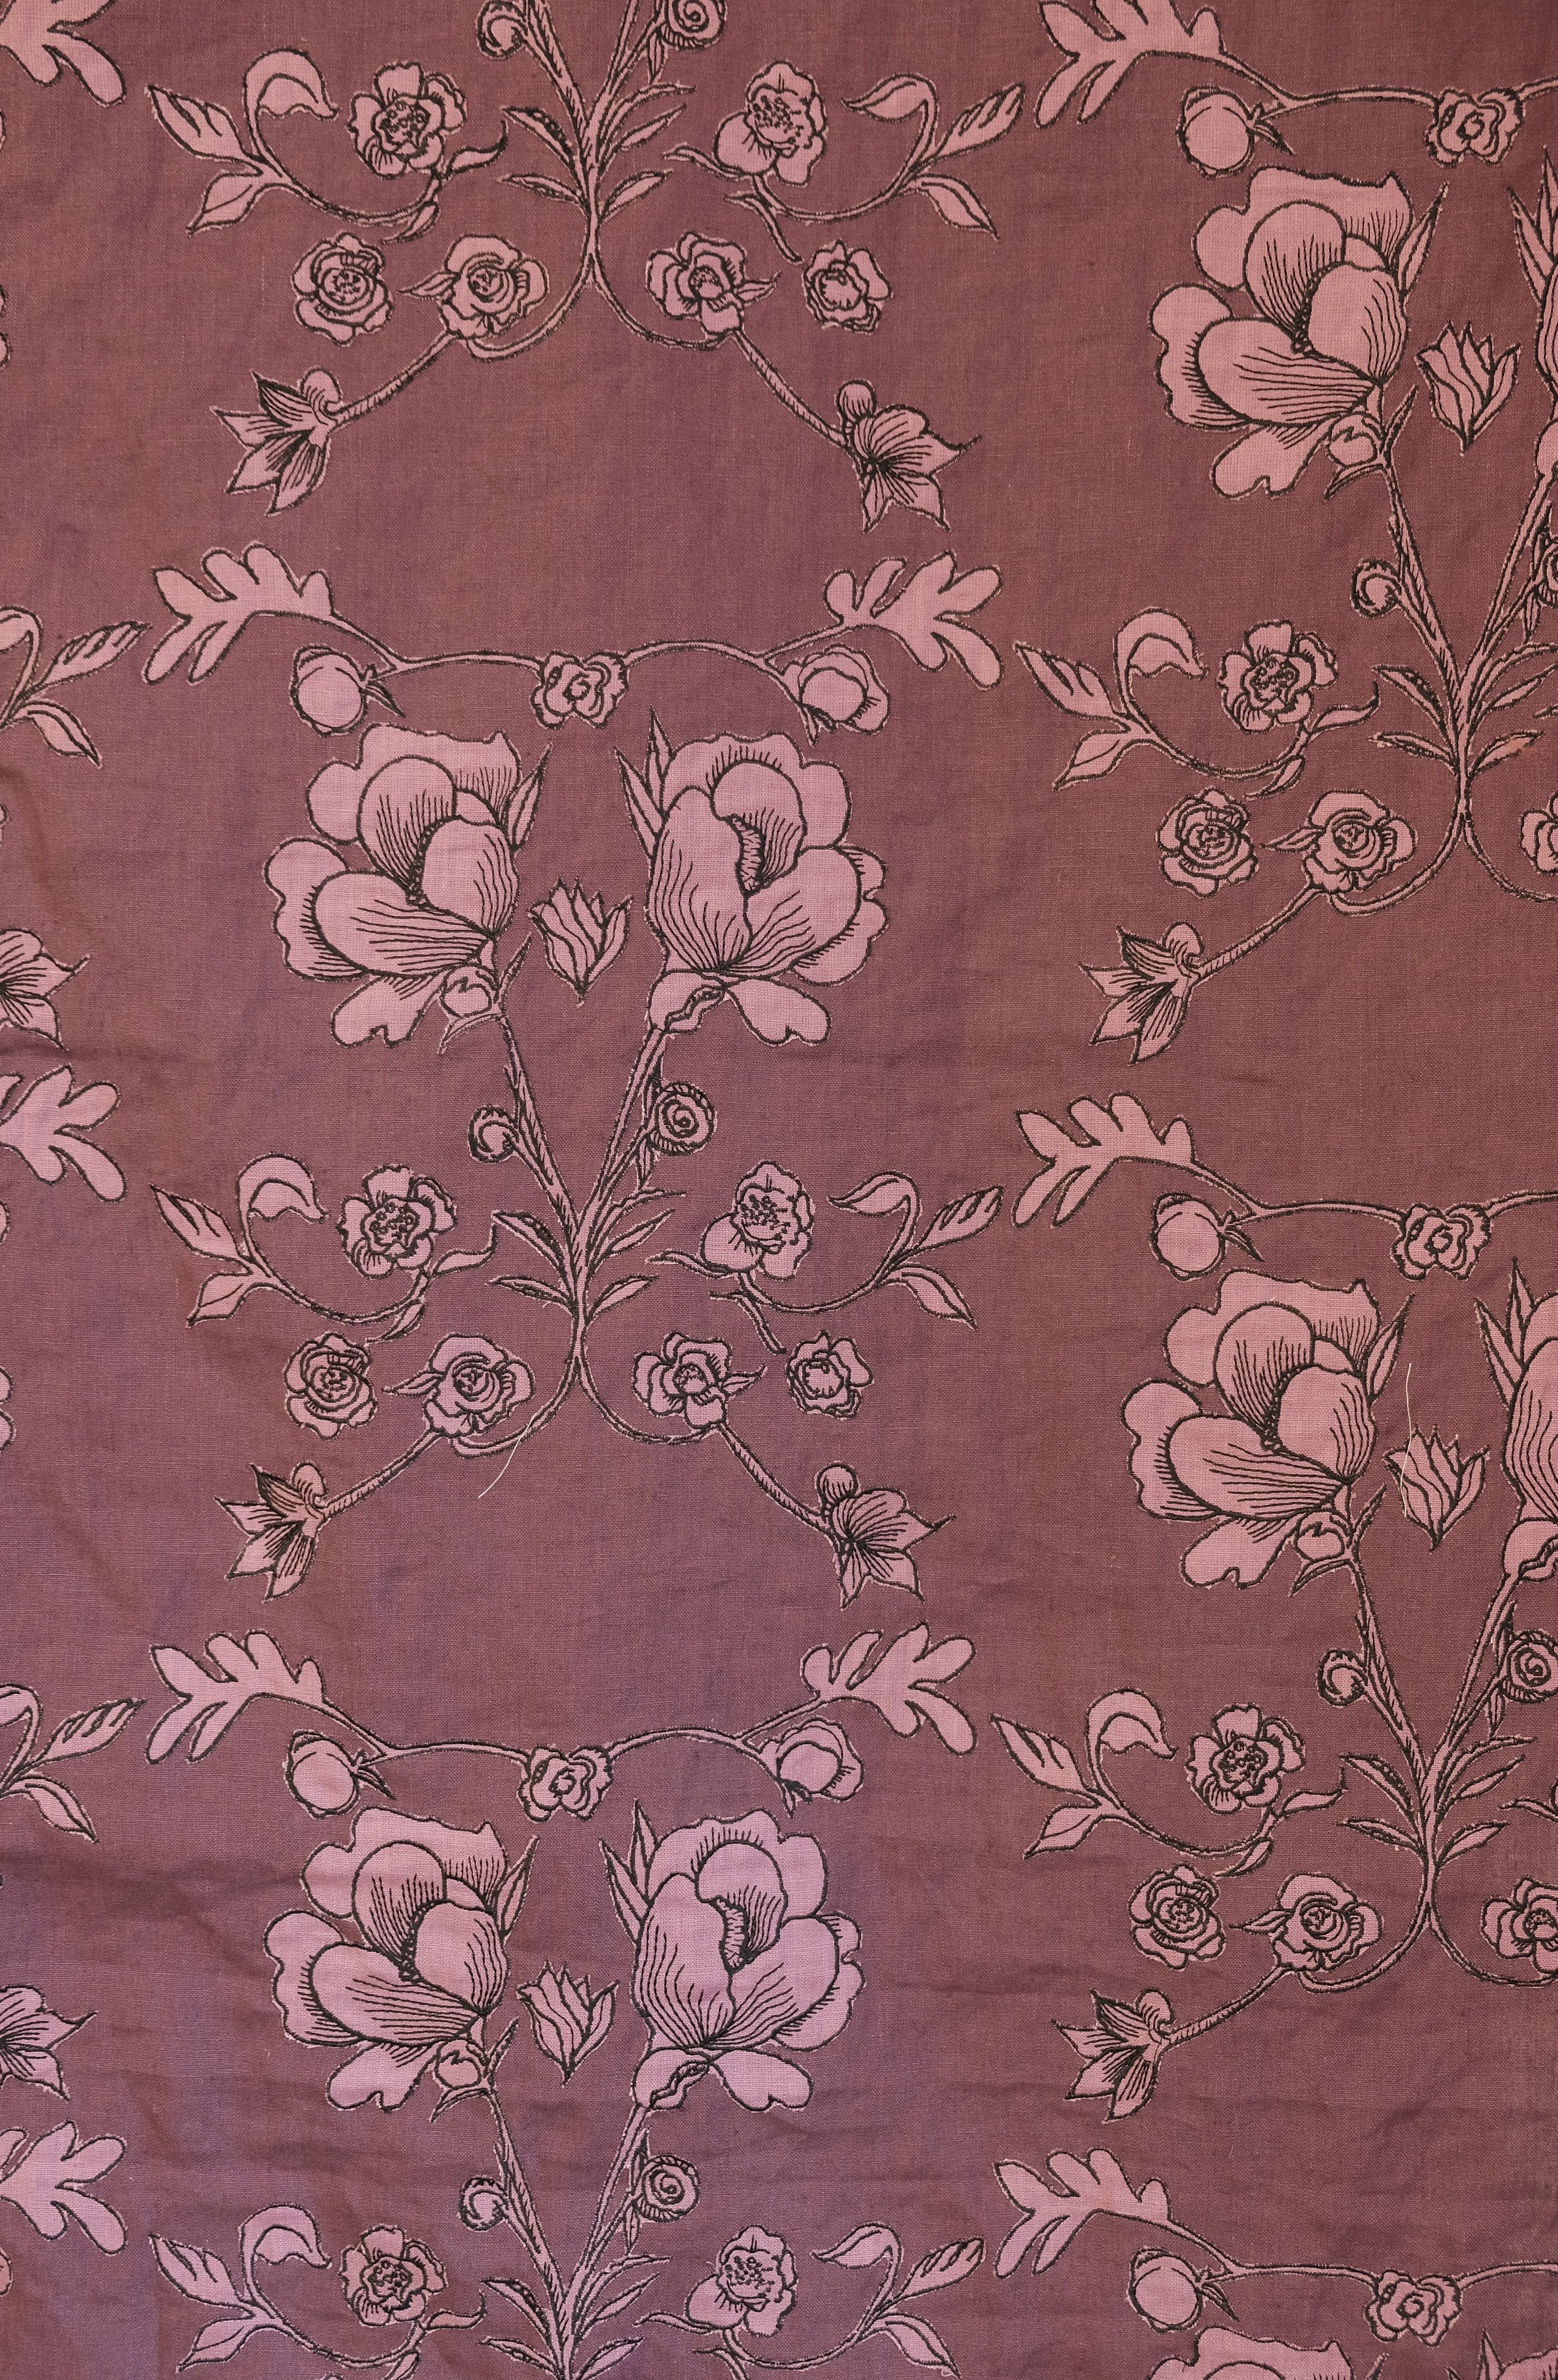 Pablo f602 - embroidered applique on linen